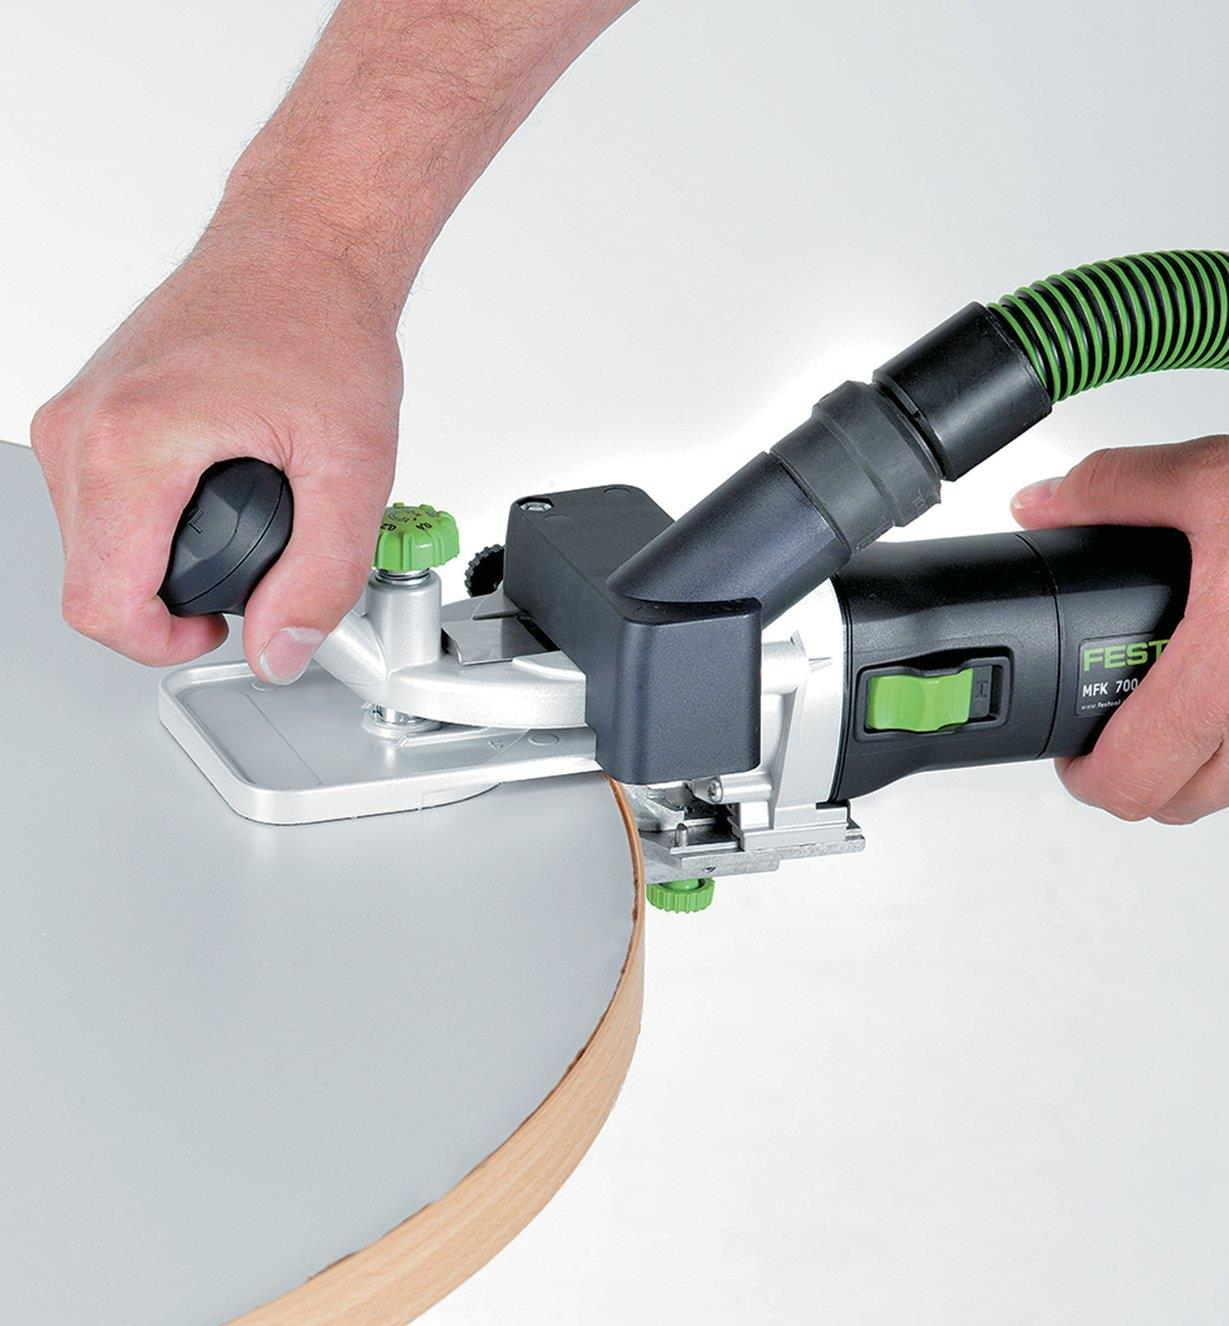 Using the router and horizontal base to trim edging on a curved tabletop